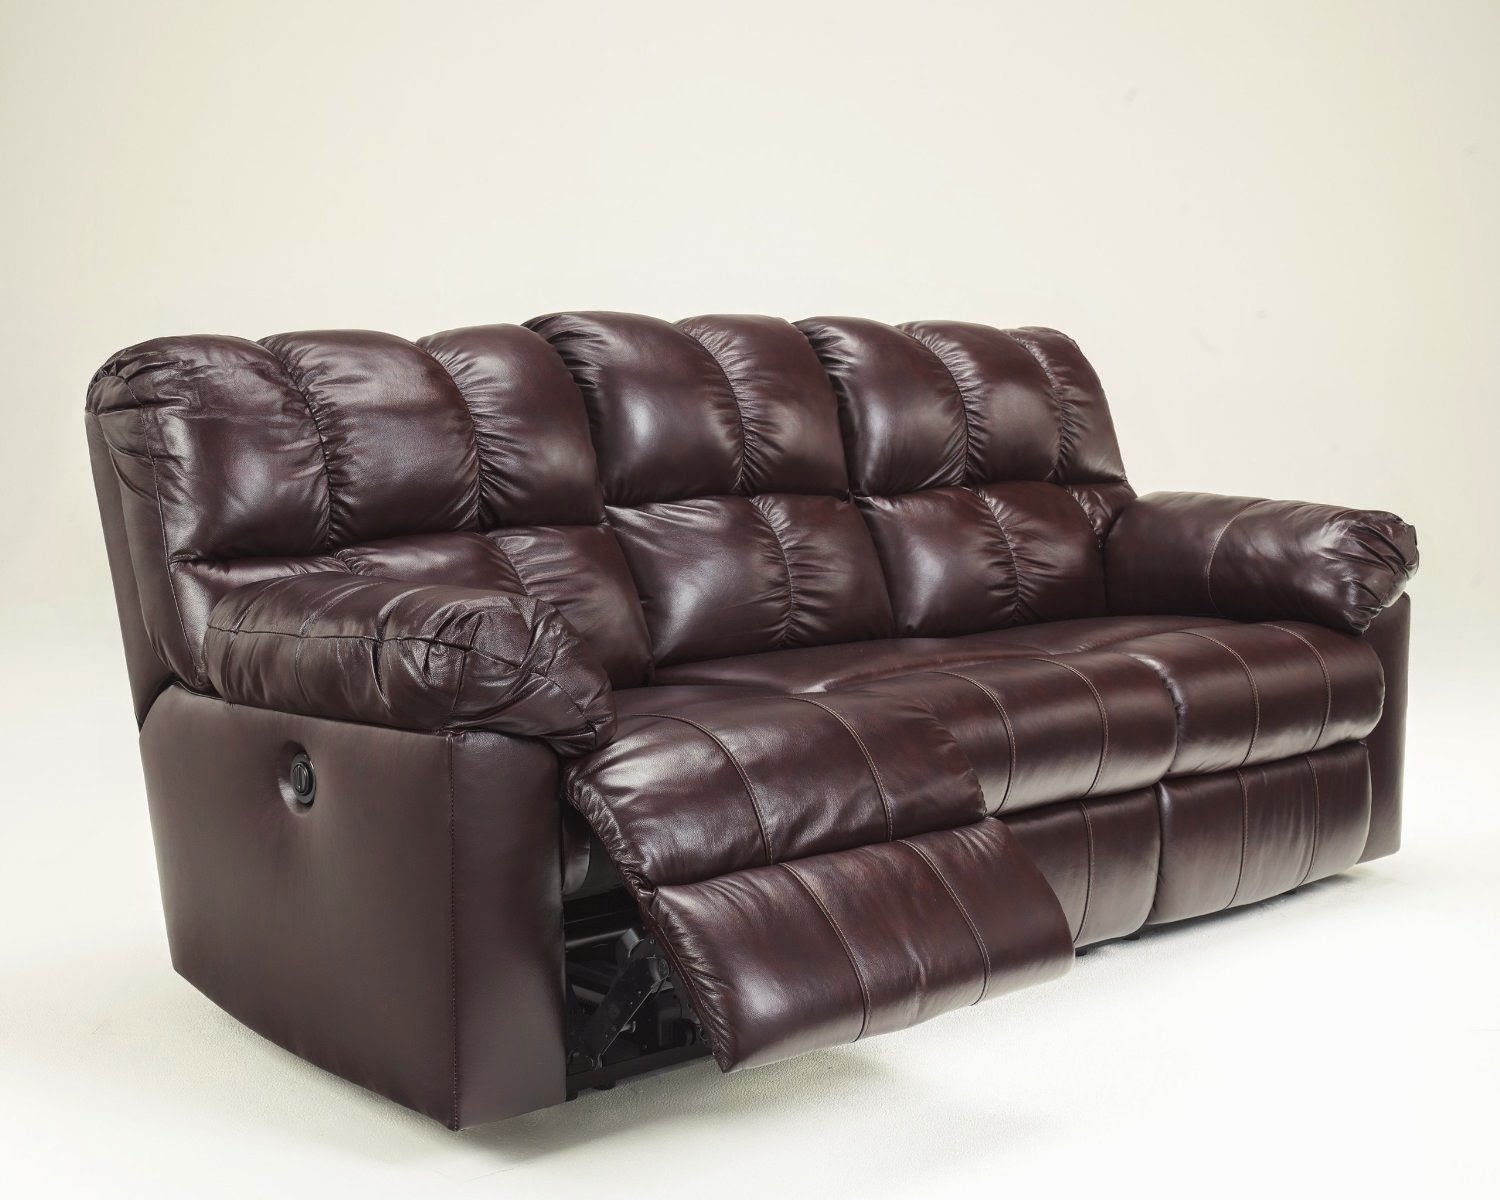 Cheap Recliner Chair Reclining Sofas For Sale Cheap Red Leather Reclining Sofa